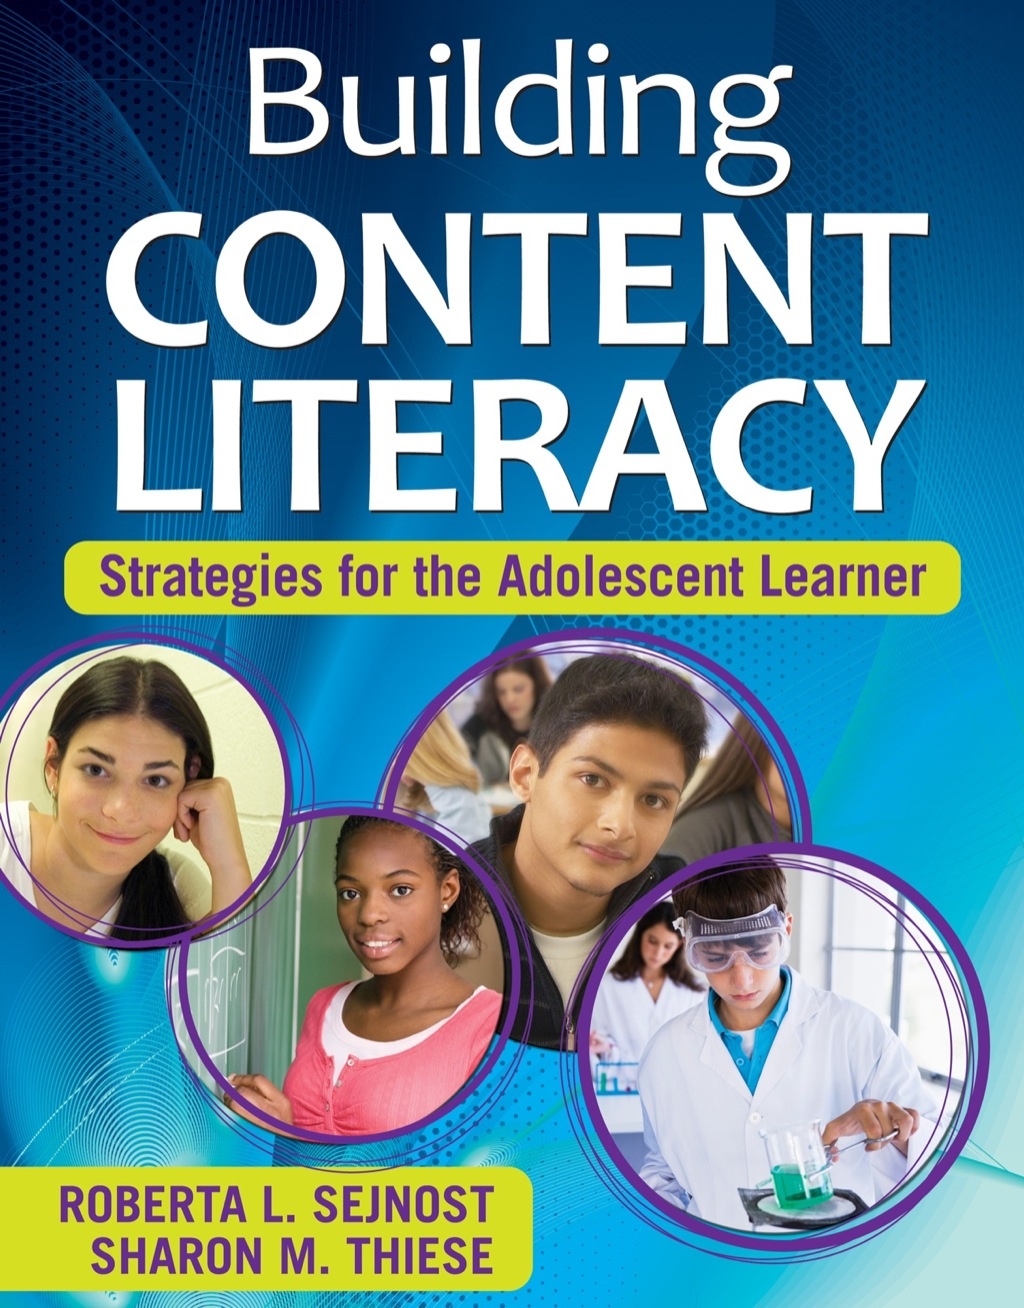 Building Content Literacy: Strategies for the Adolescent Learner (ebook)